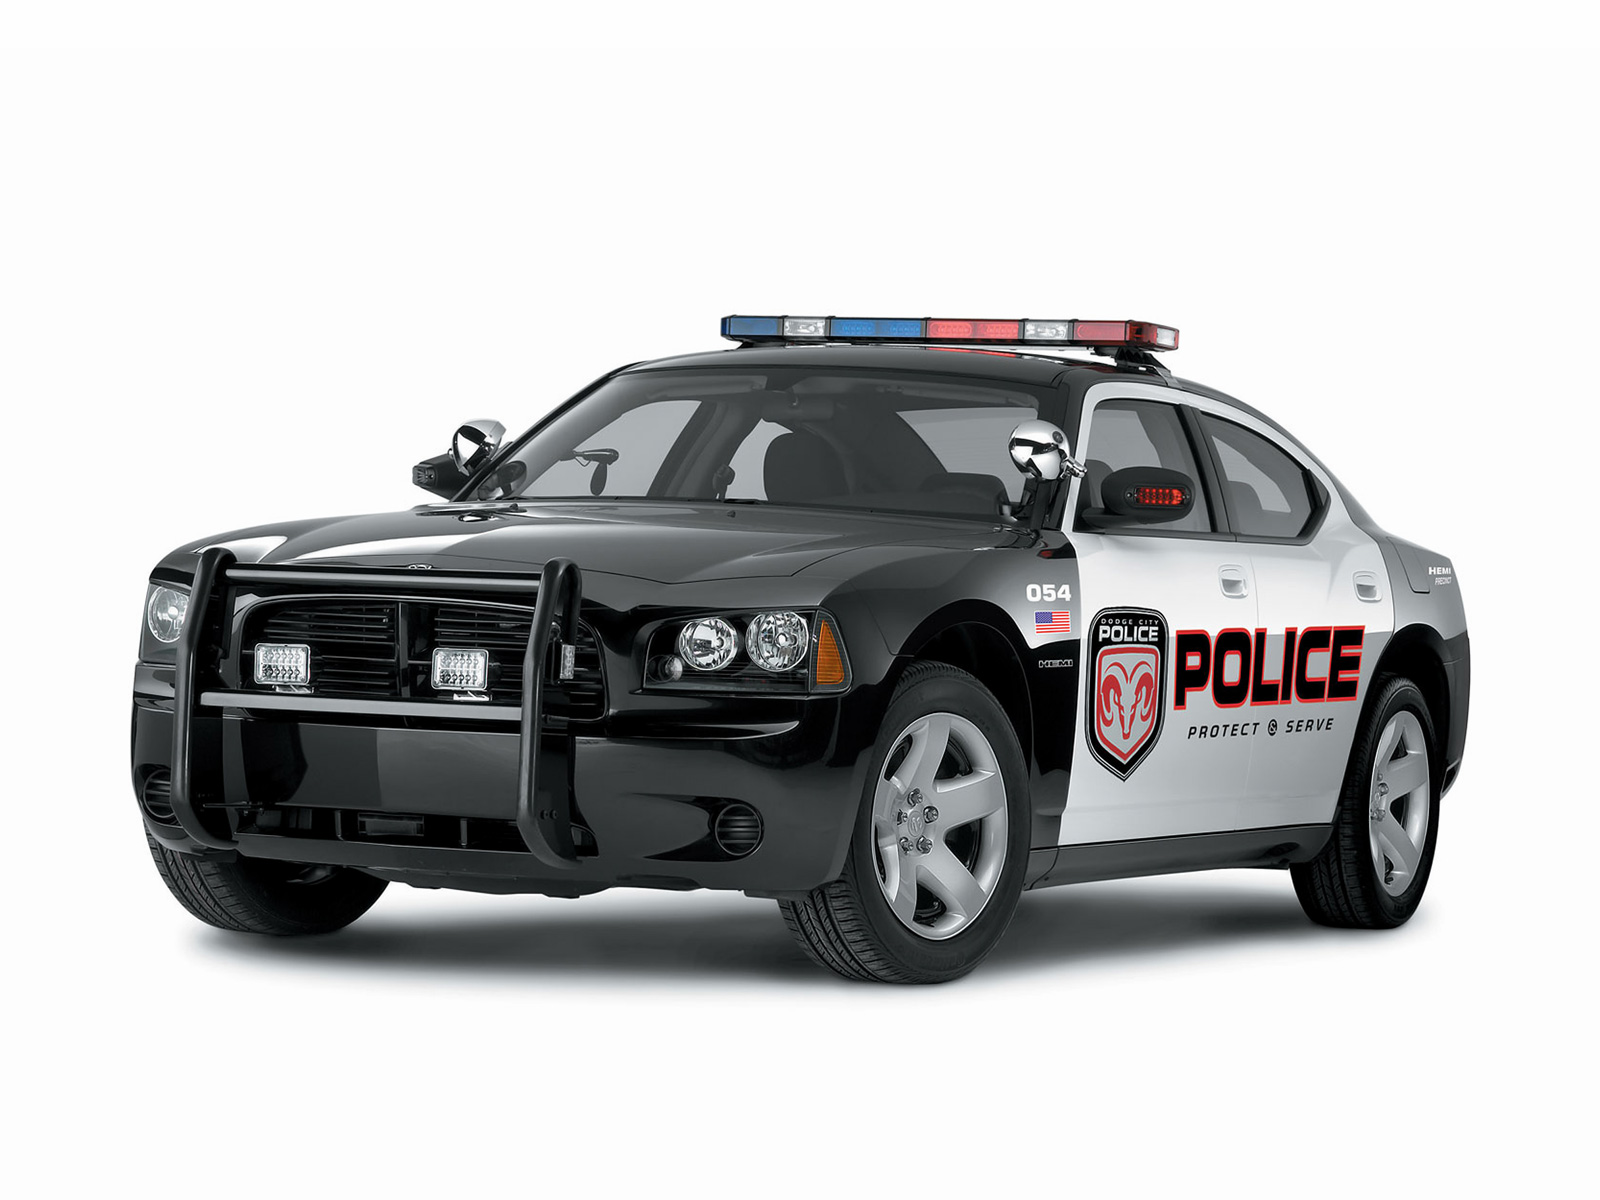 3d dodge police car wallpaper: desktop hd wallpaper - download free